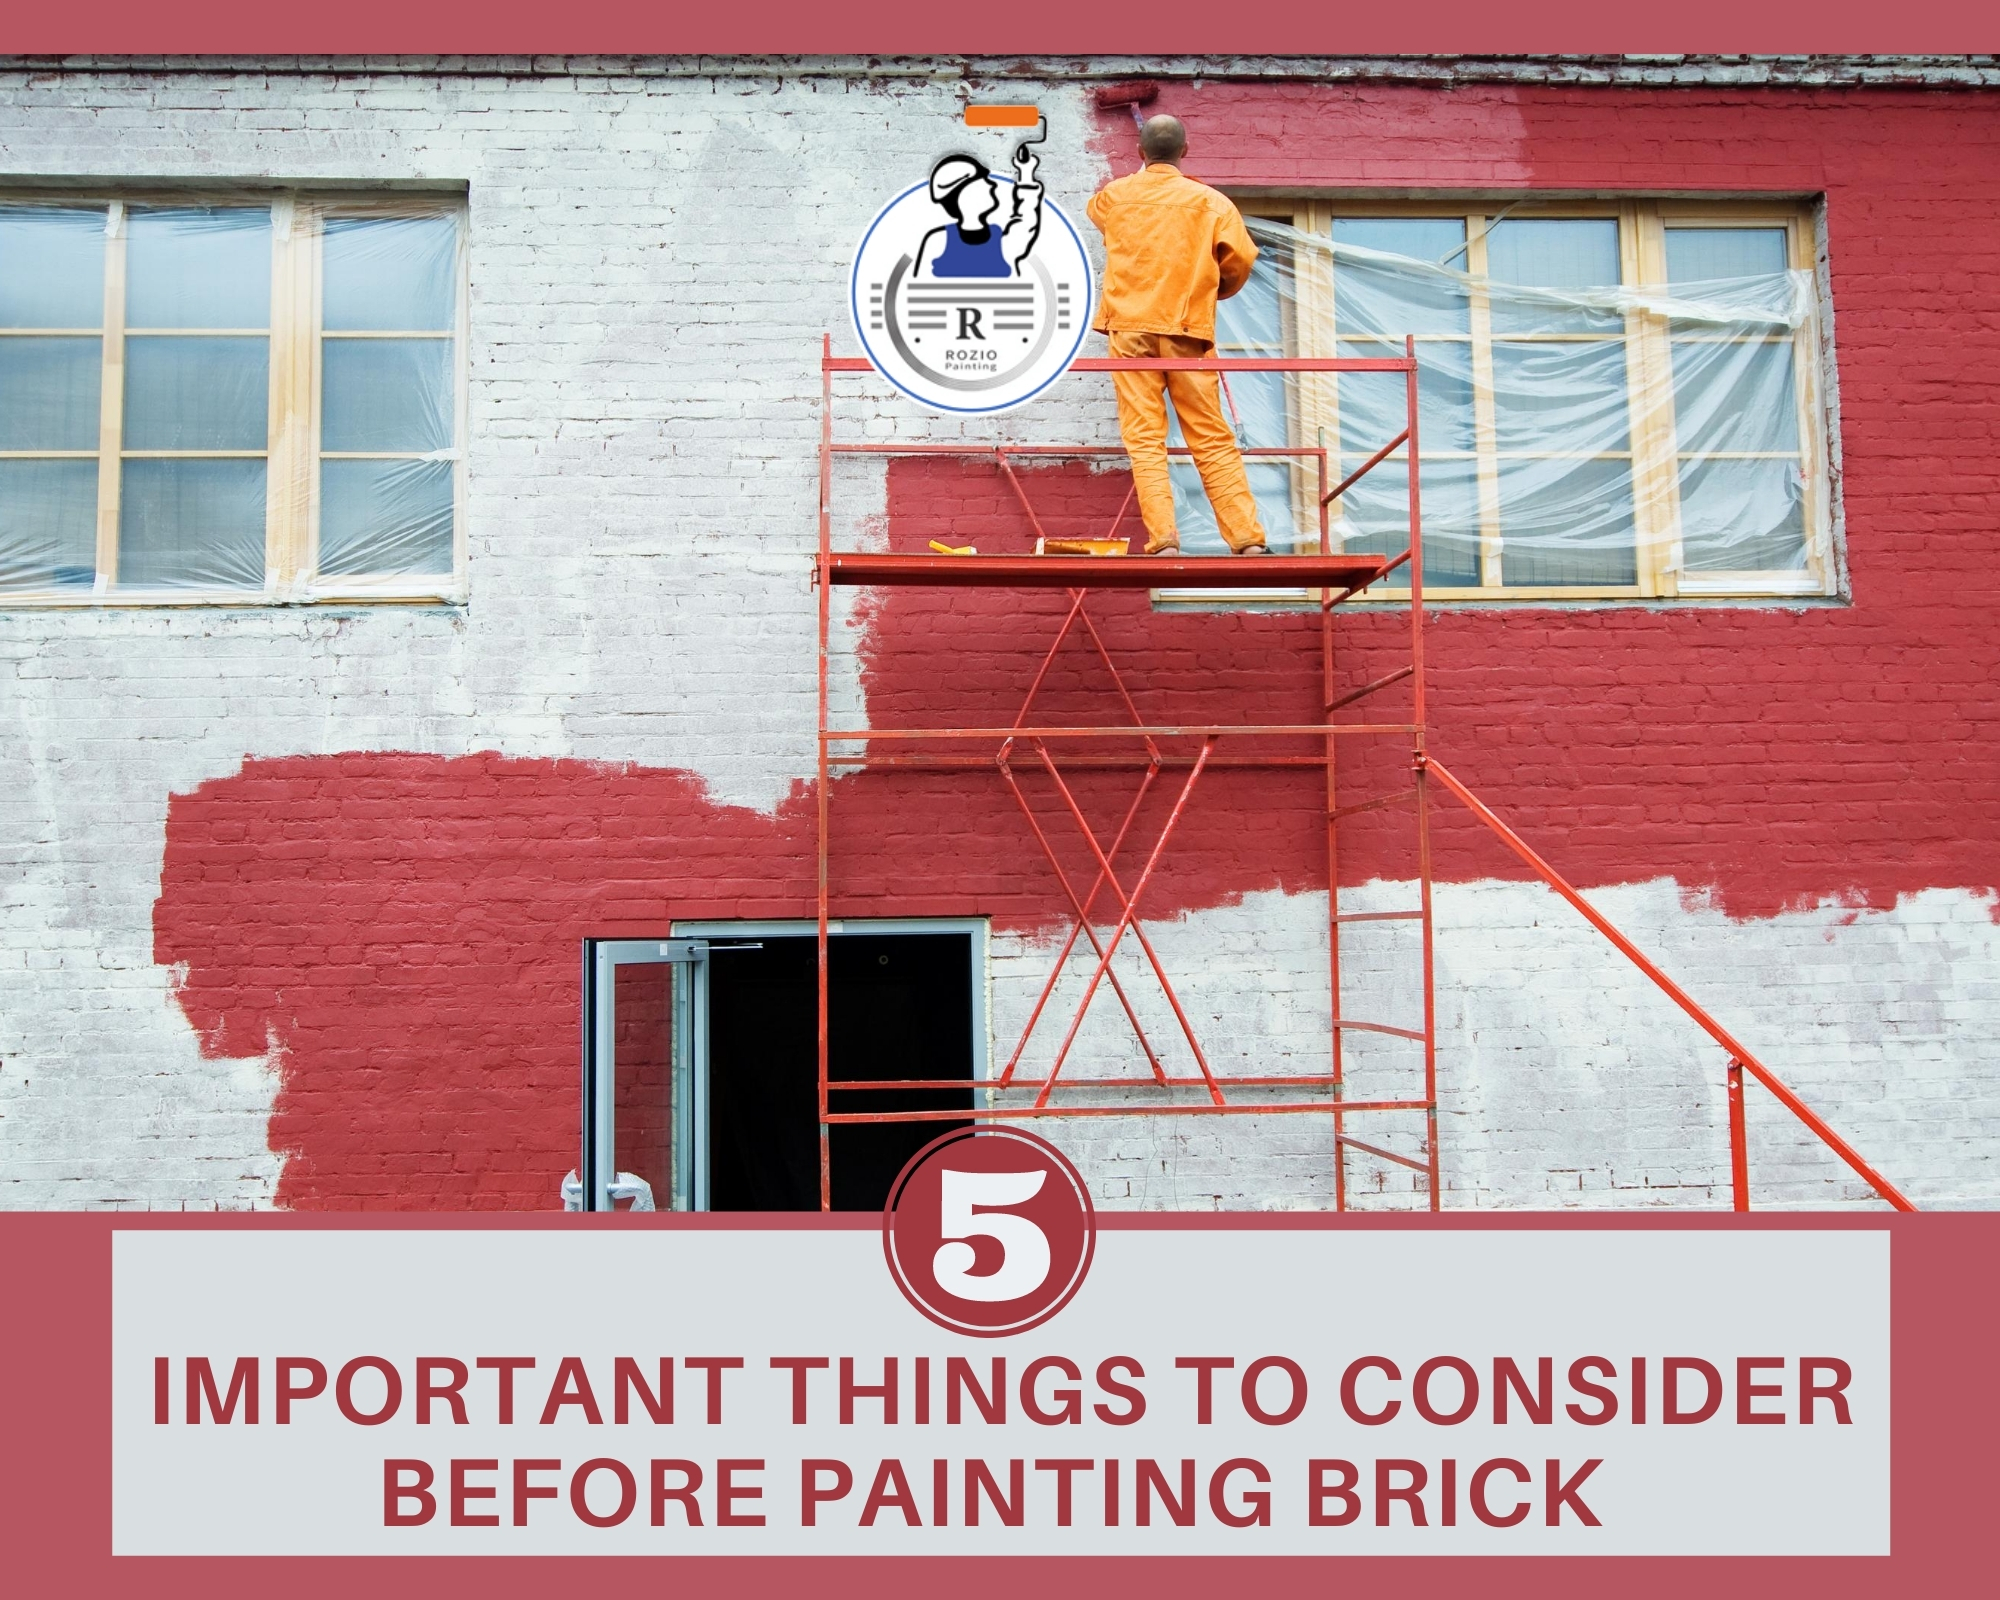 5 Important Things to Consider Before Painting Brick